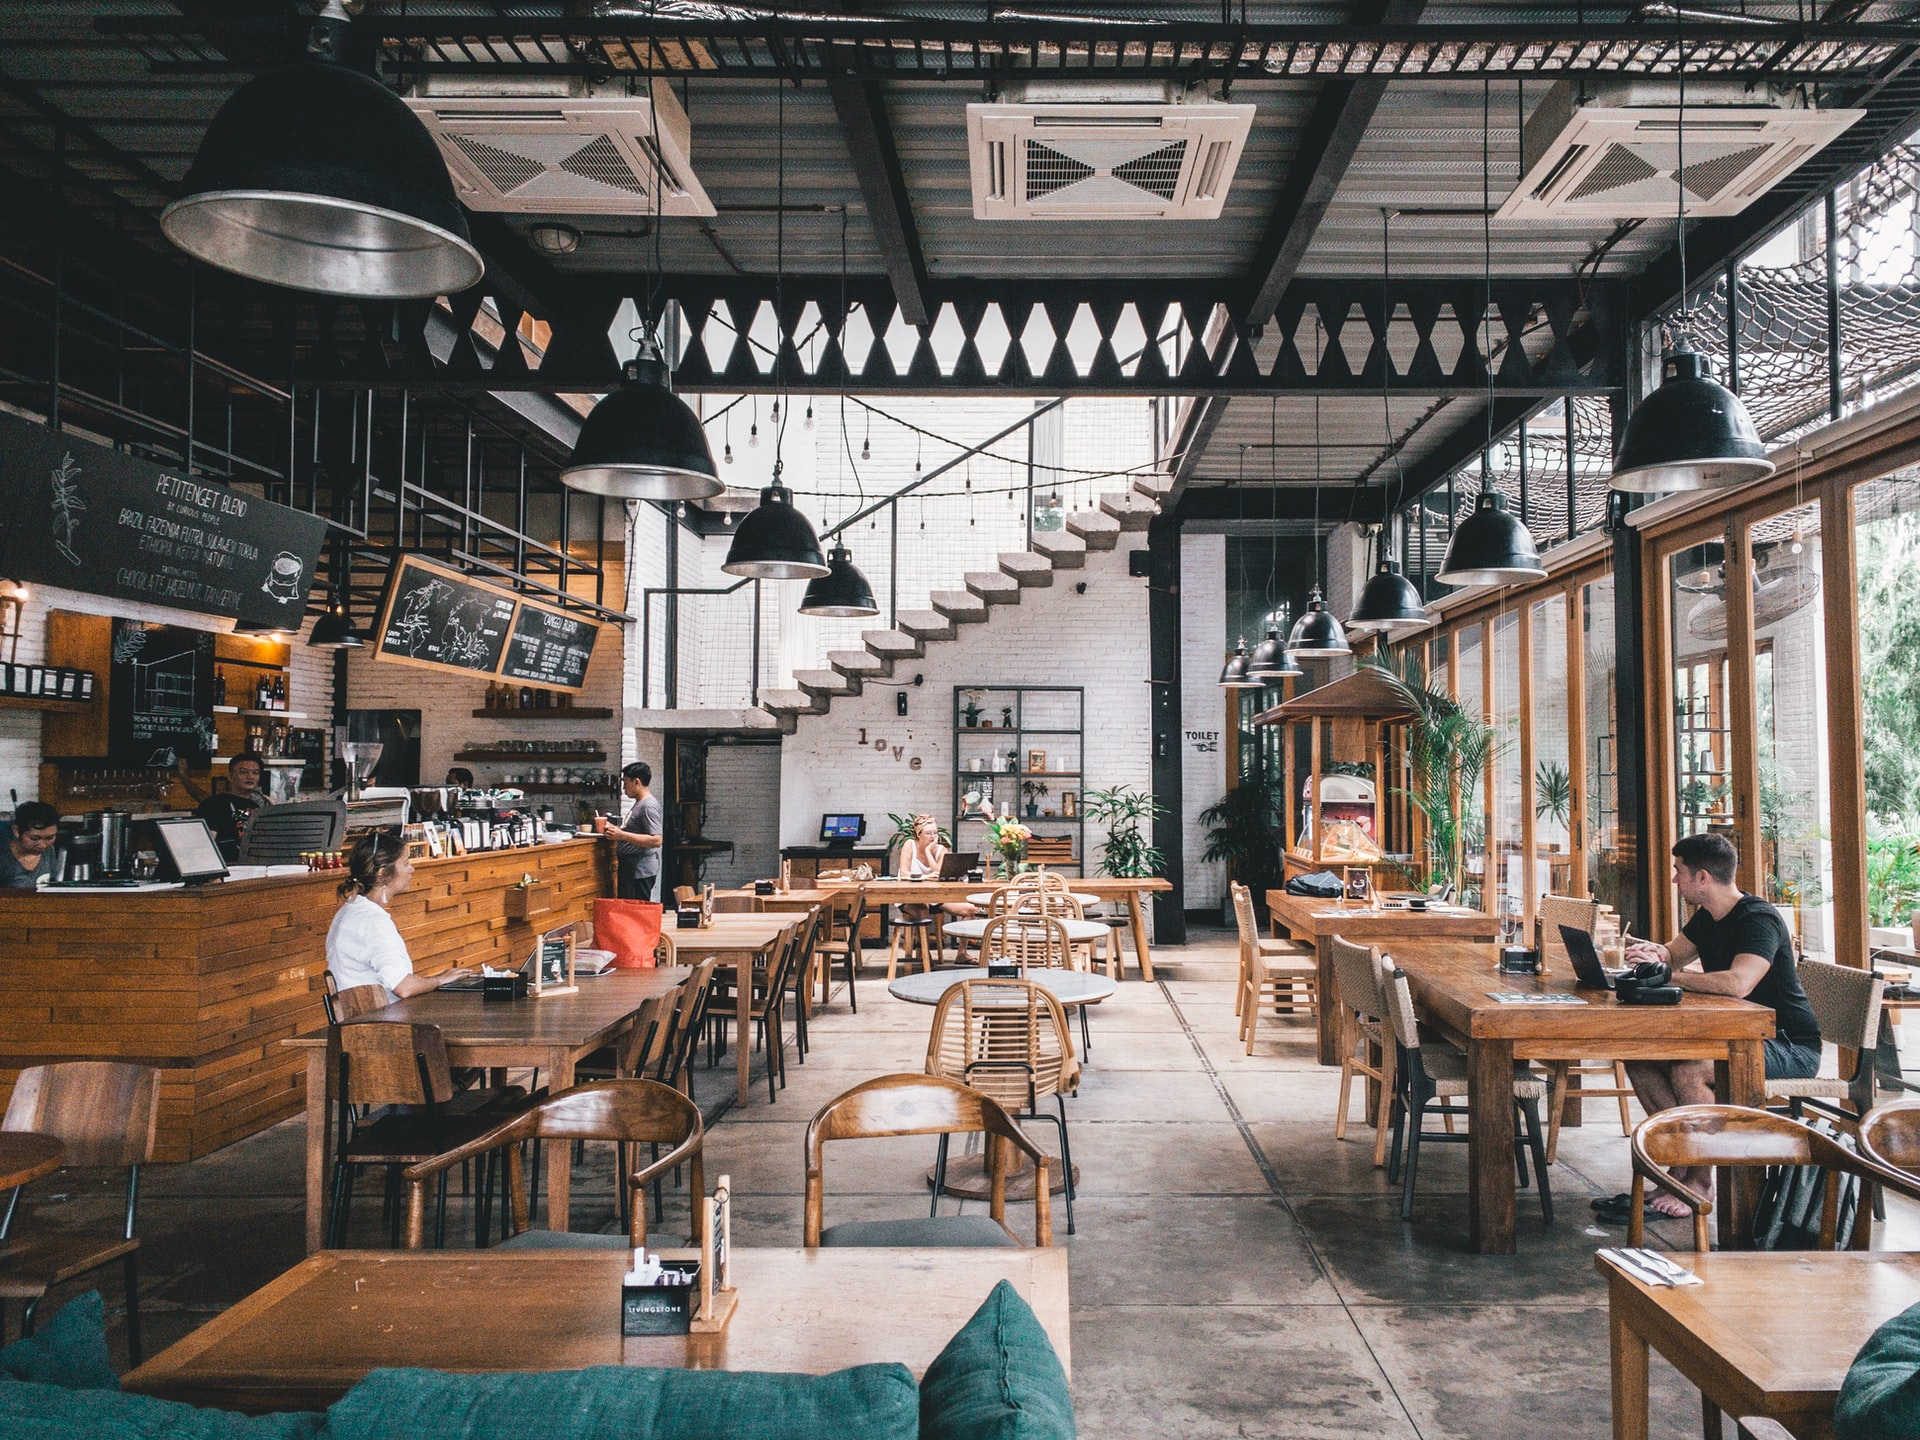 The Restaurant Owner's Guide to Plumbing Maintenance